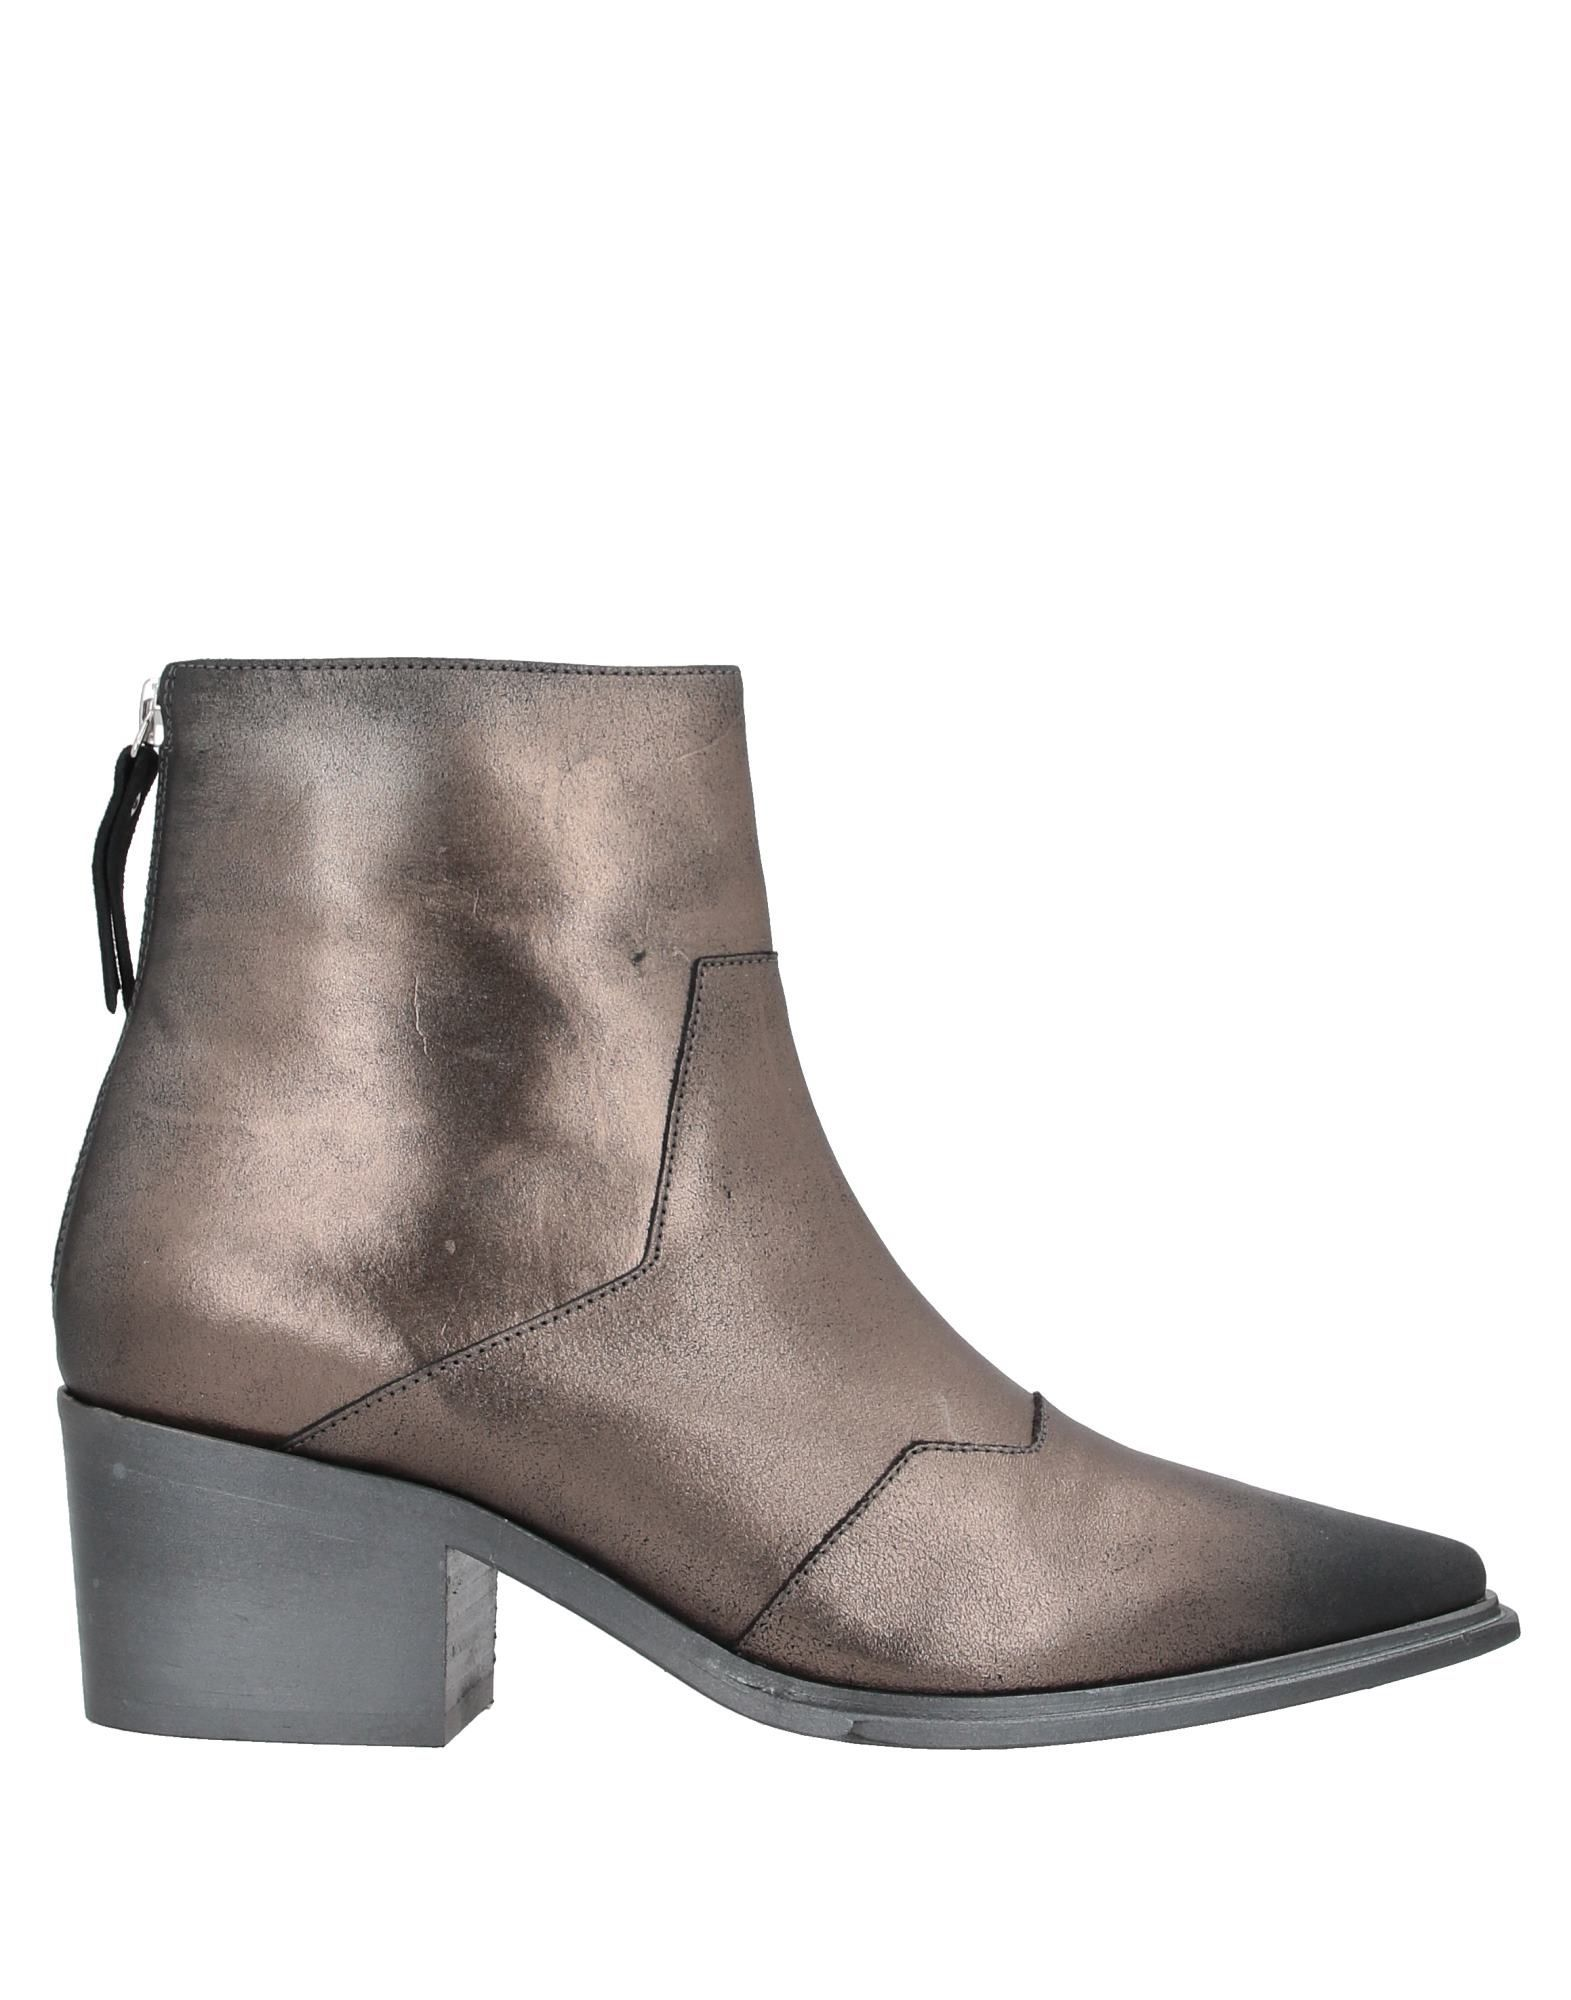 Vic Matie Women's Ankle Boots Bronze Leather